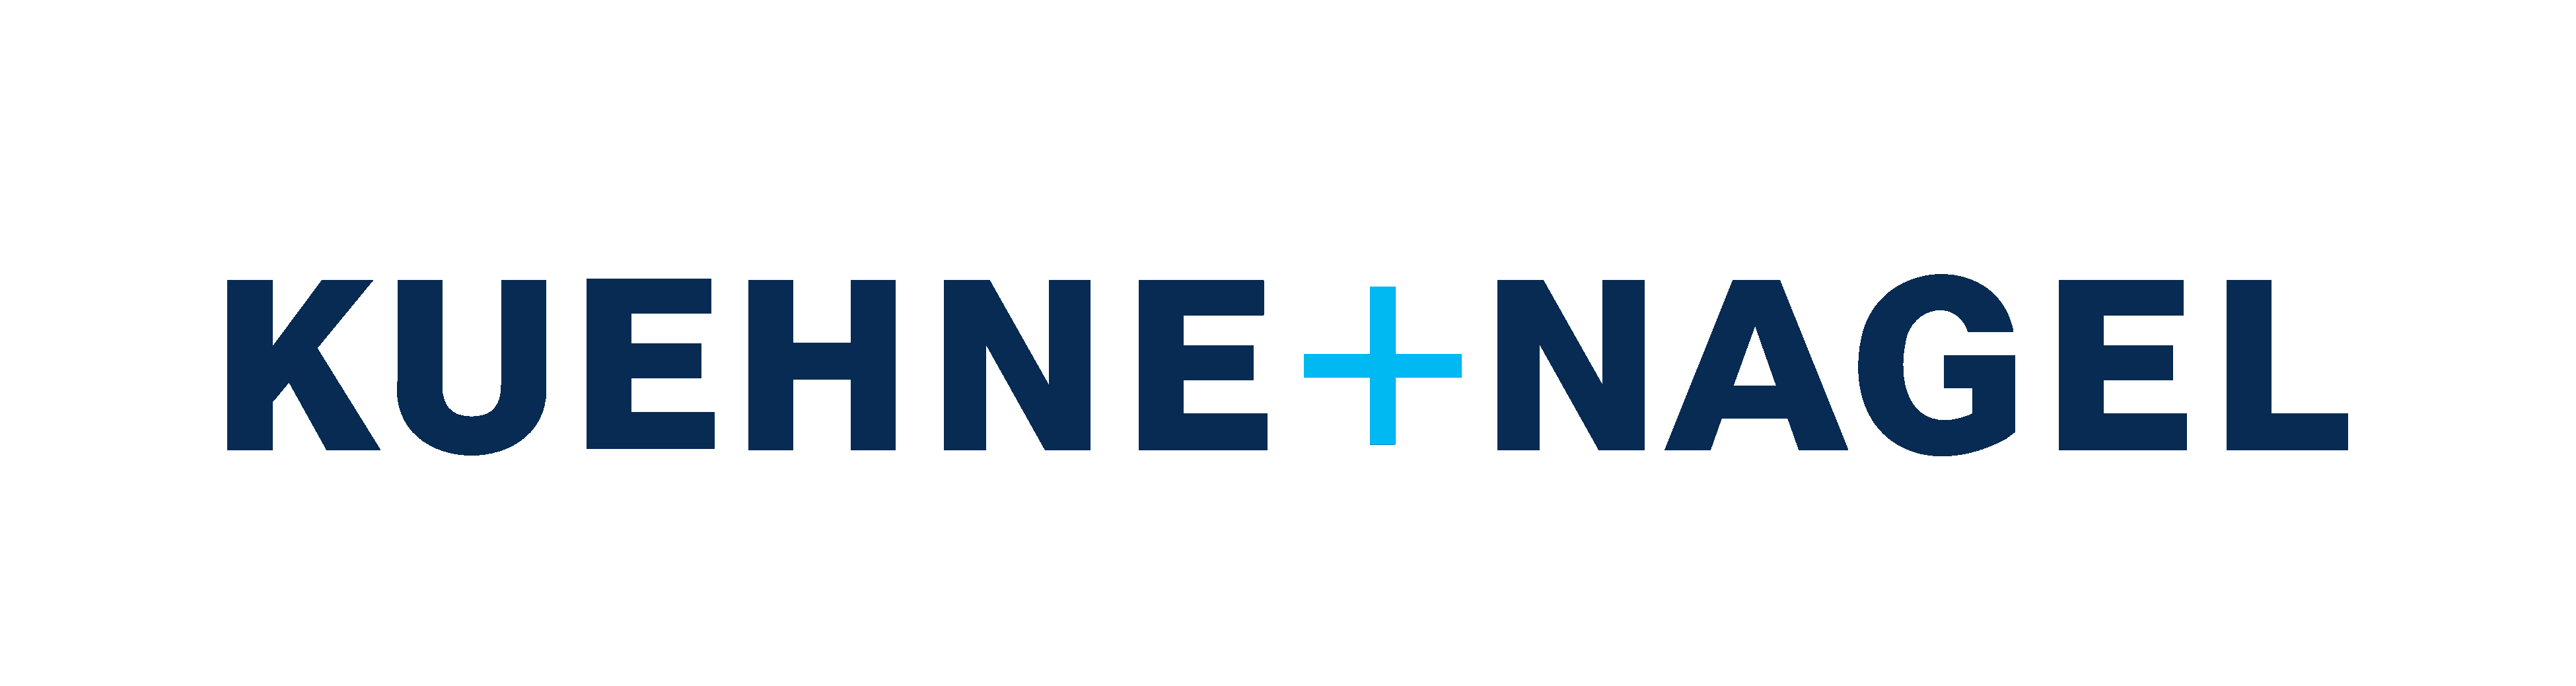 Kuehne + Nagel  - one of our ecosystem partners